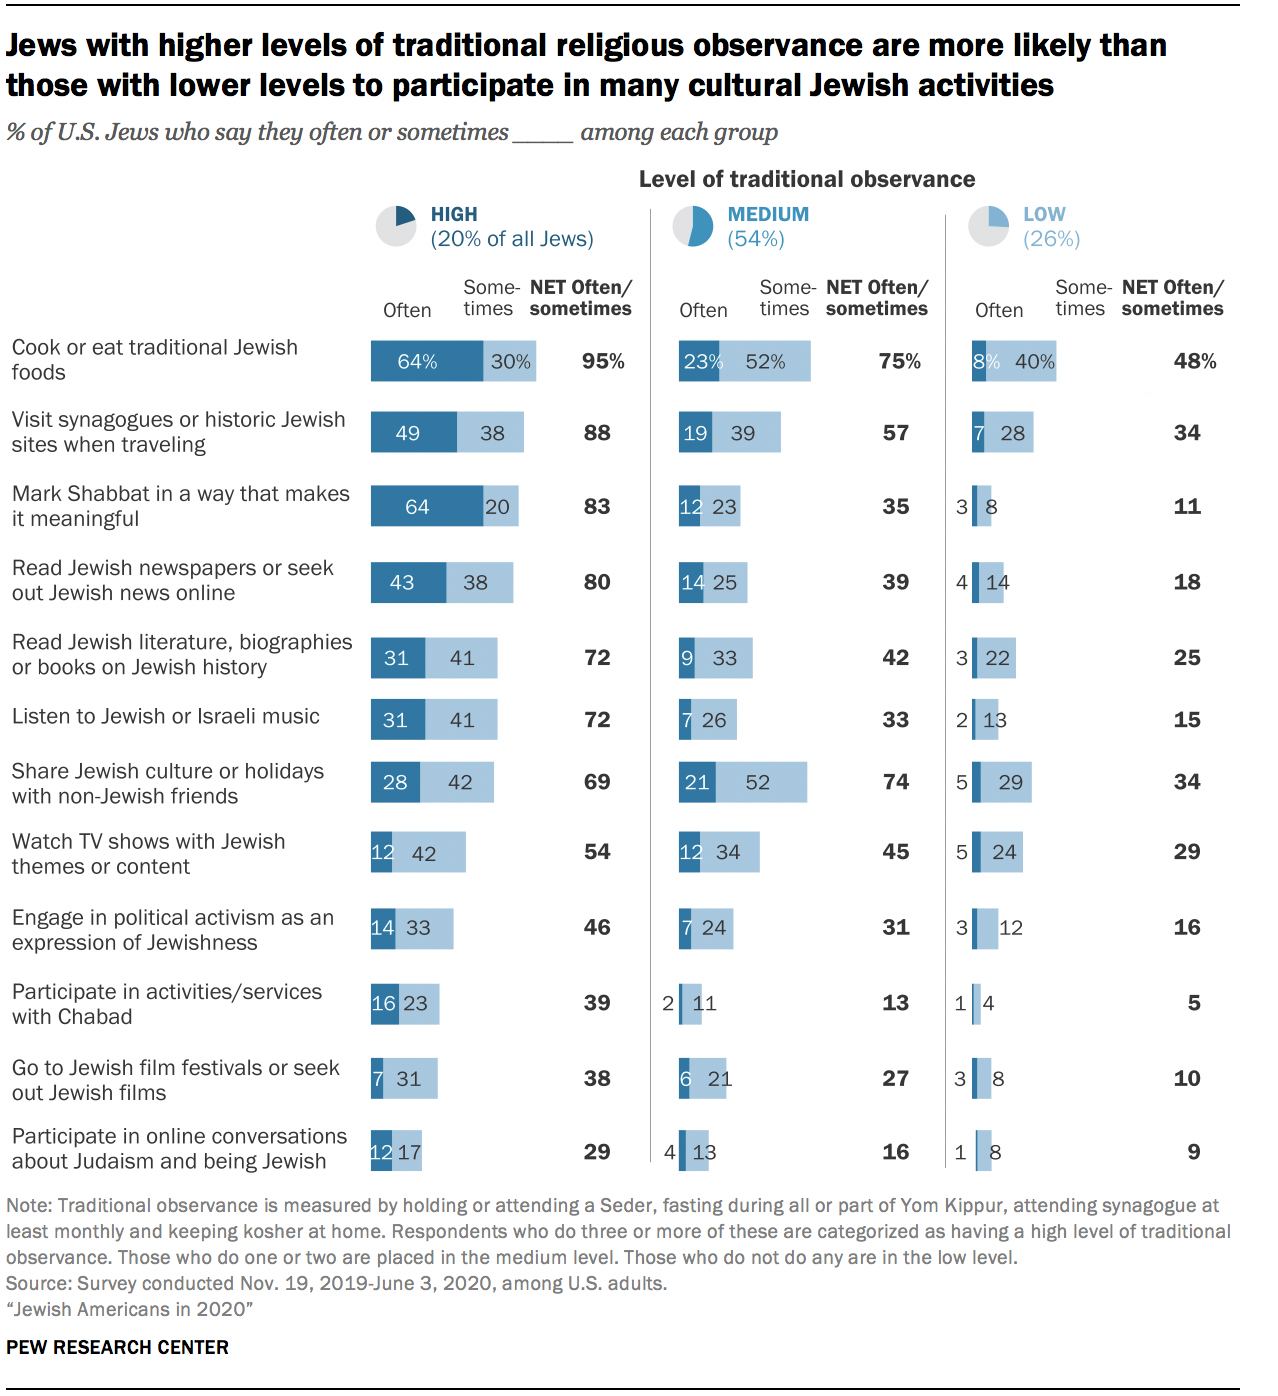 Jews with higher levels of traditional religious observance are more likely than those with lower levels to participate in many cultural Jewish activities